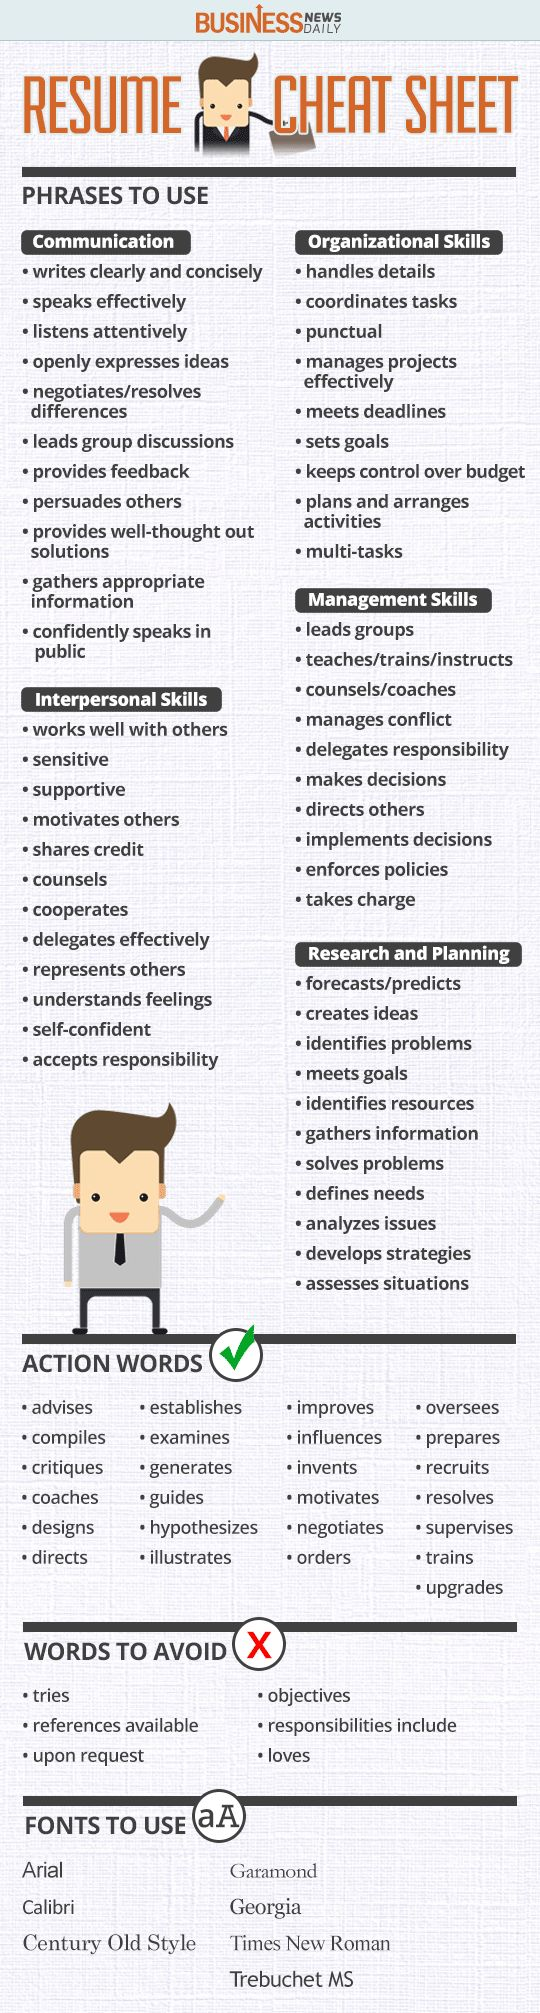 Opposenewapstandardsus  Pleasant  Ideas About Resume On Pinterest  Cv Format Resume Cv And  With Goodlooking Resume Cheat Sheet Infographic Andrews Almost Done With A Complete Unit On Employment Which With Astonishing Microbiologist Resume Also Define Resume For A Job In Addition Small Business Owner Resume Sample And Sap Sd Resume As Well As Onet Online Resume Additionally Excel Resume Template From Pinterestcom With Opposenewapstandardsus  Goodlooking  Ideas About Resume On Pinterest  Cv Format Resume Cv And  With Astonishing Resume Cheat Sheet Infographic Andrews Almost Done With A Complete Unit On Employment Which And Pleasant Microbiologist Resume Also Define Resume For A Job In Addition Small Business Owner Resume Sample From Pinterestcom